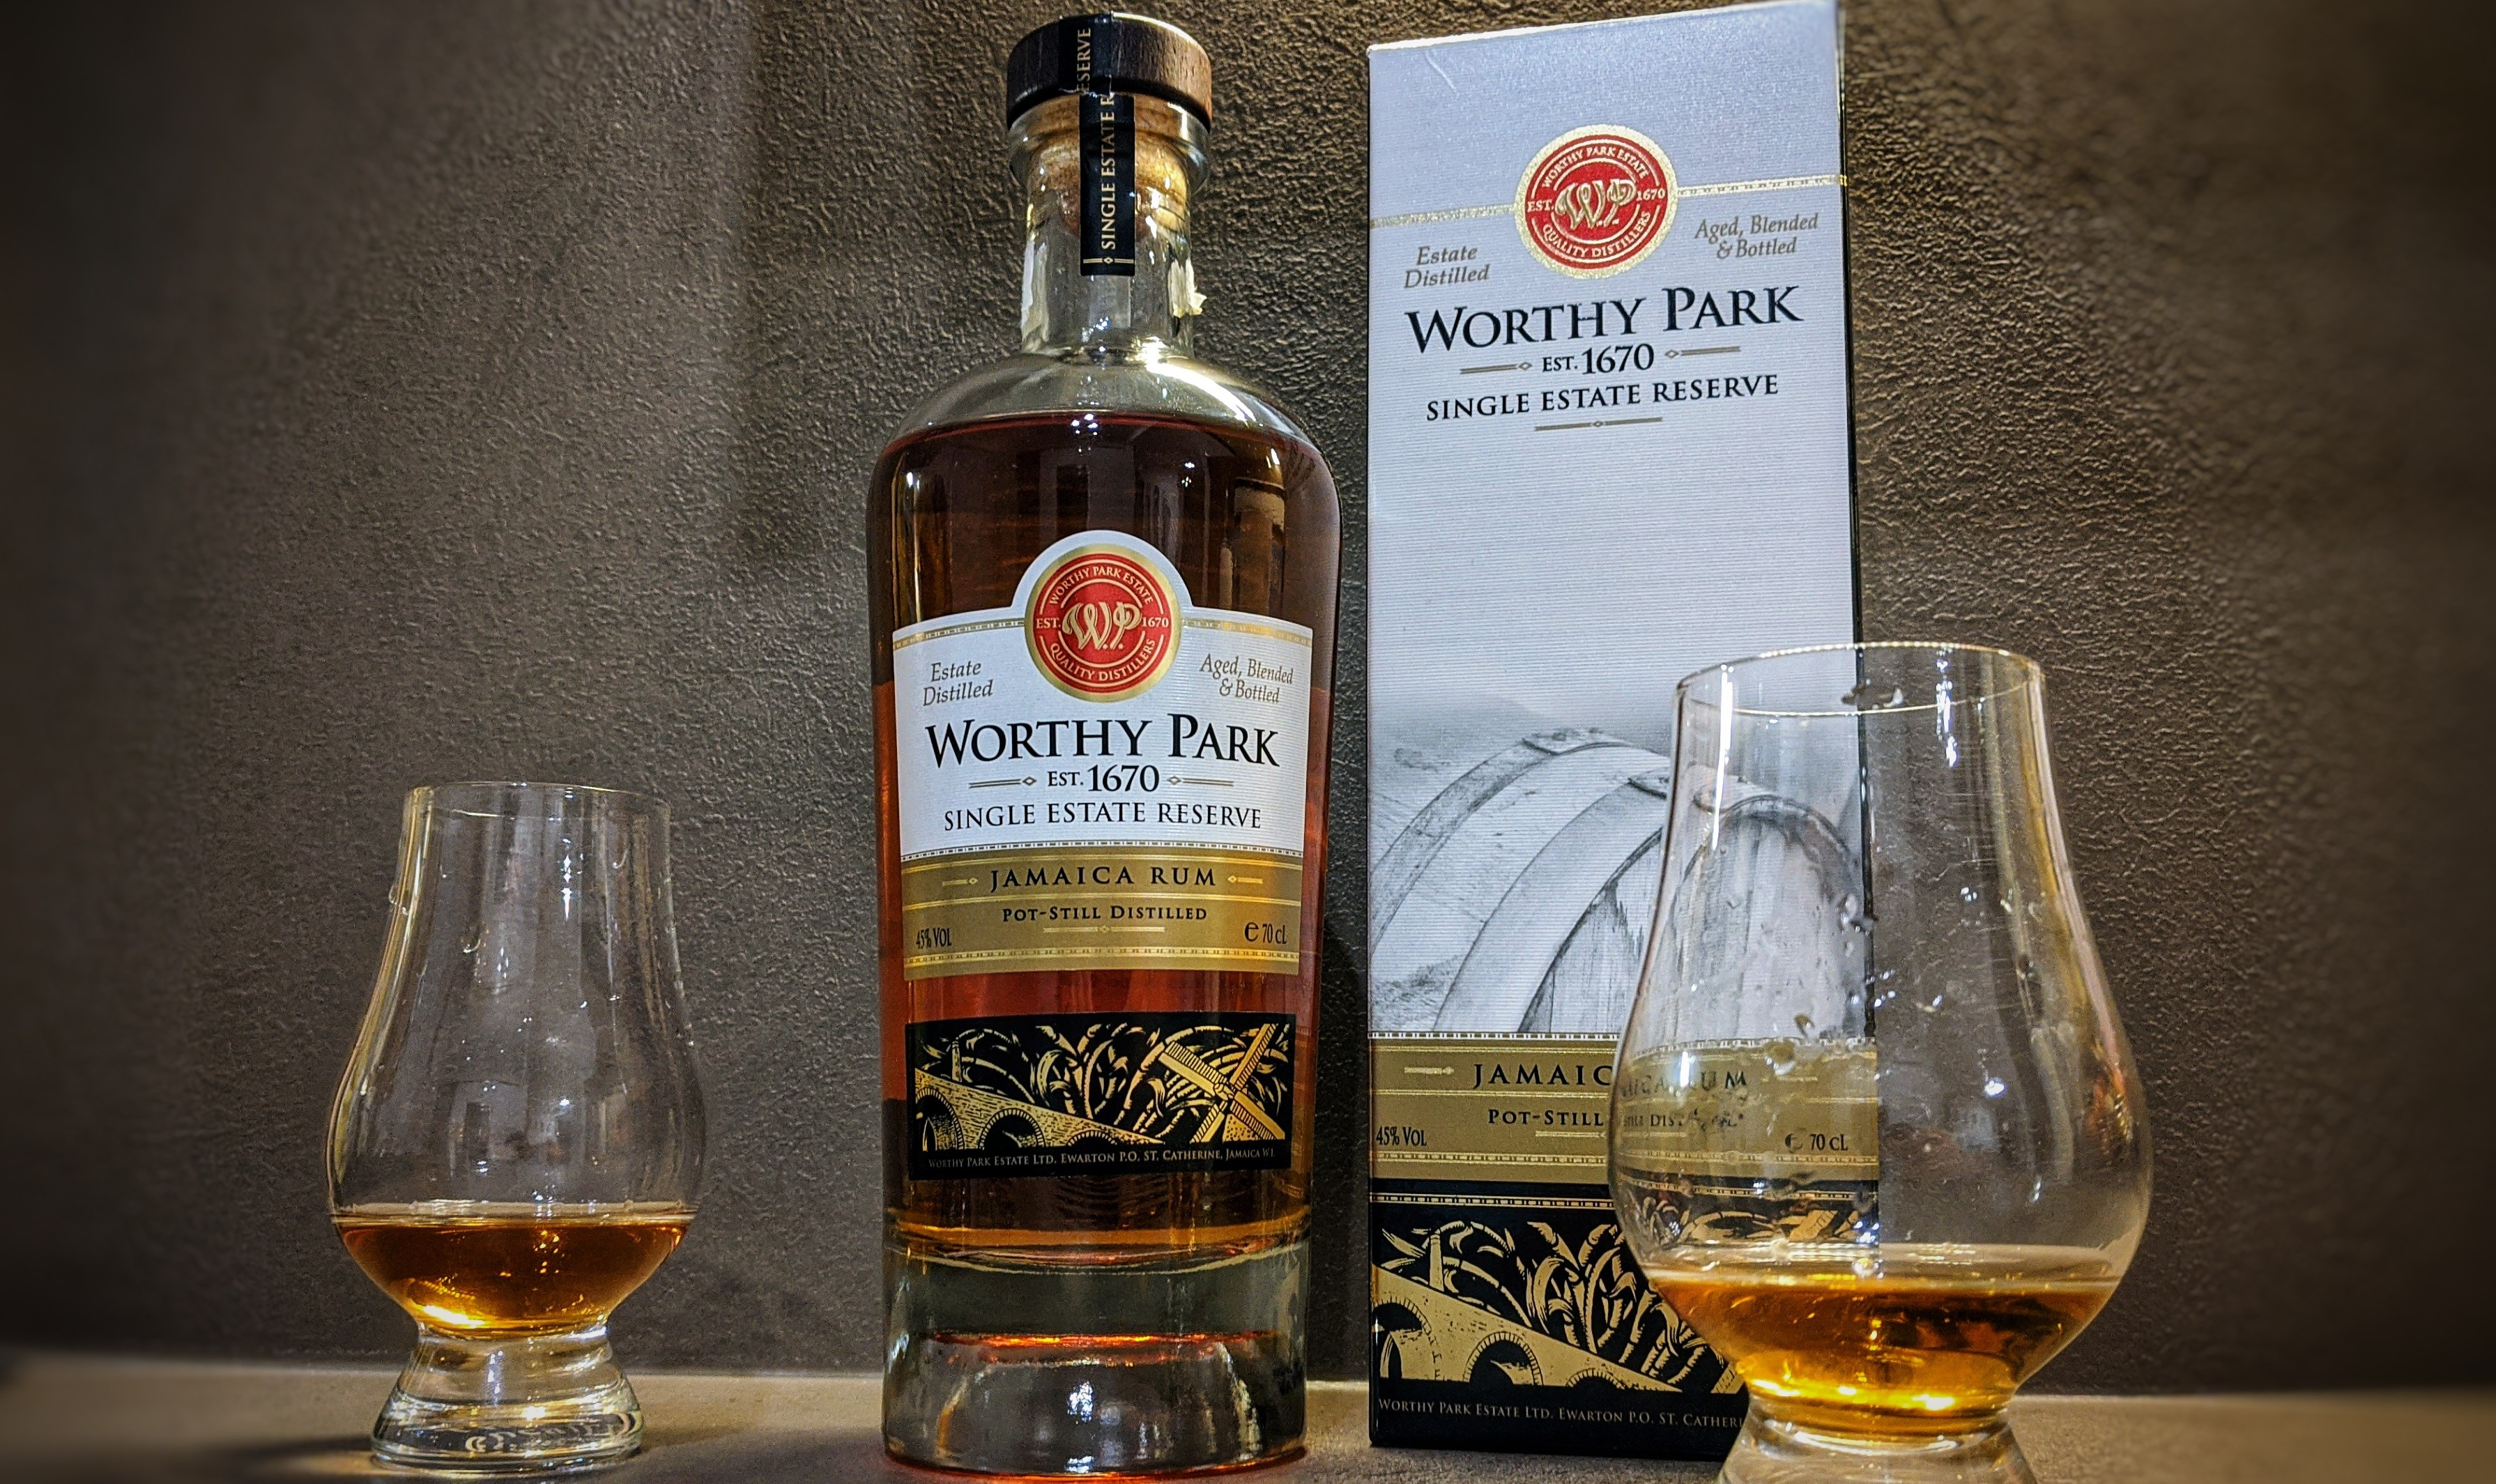 Worthy Park Single Estate Reserve